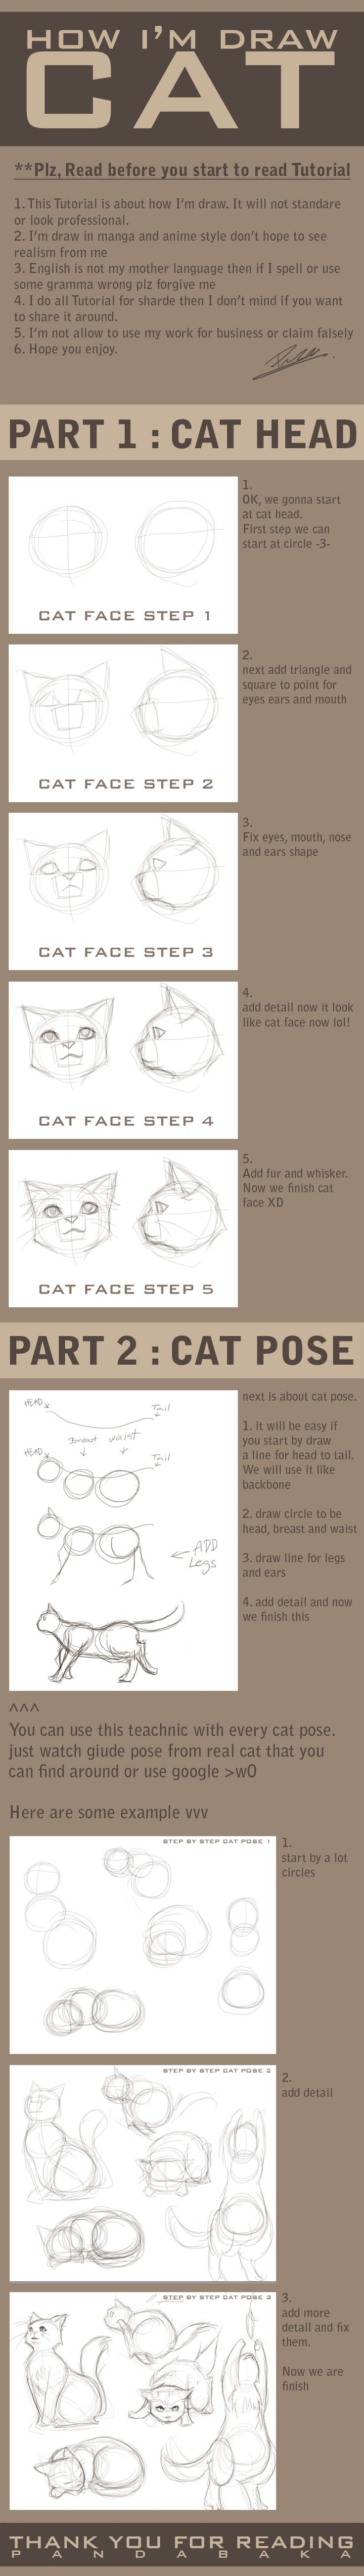 how I am draw cat by pandabaka on deviantART - these things help for a lot of things, take note and just leave it till you need it!